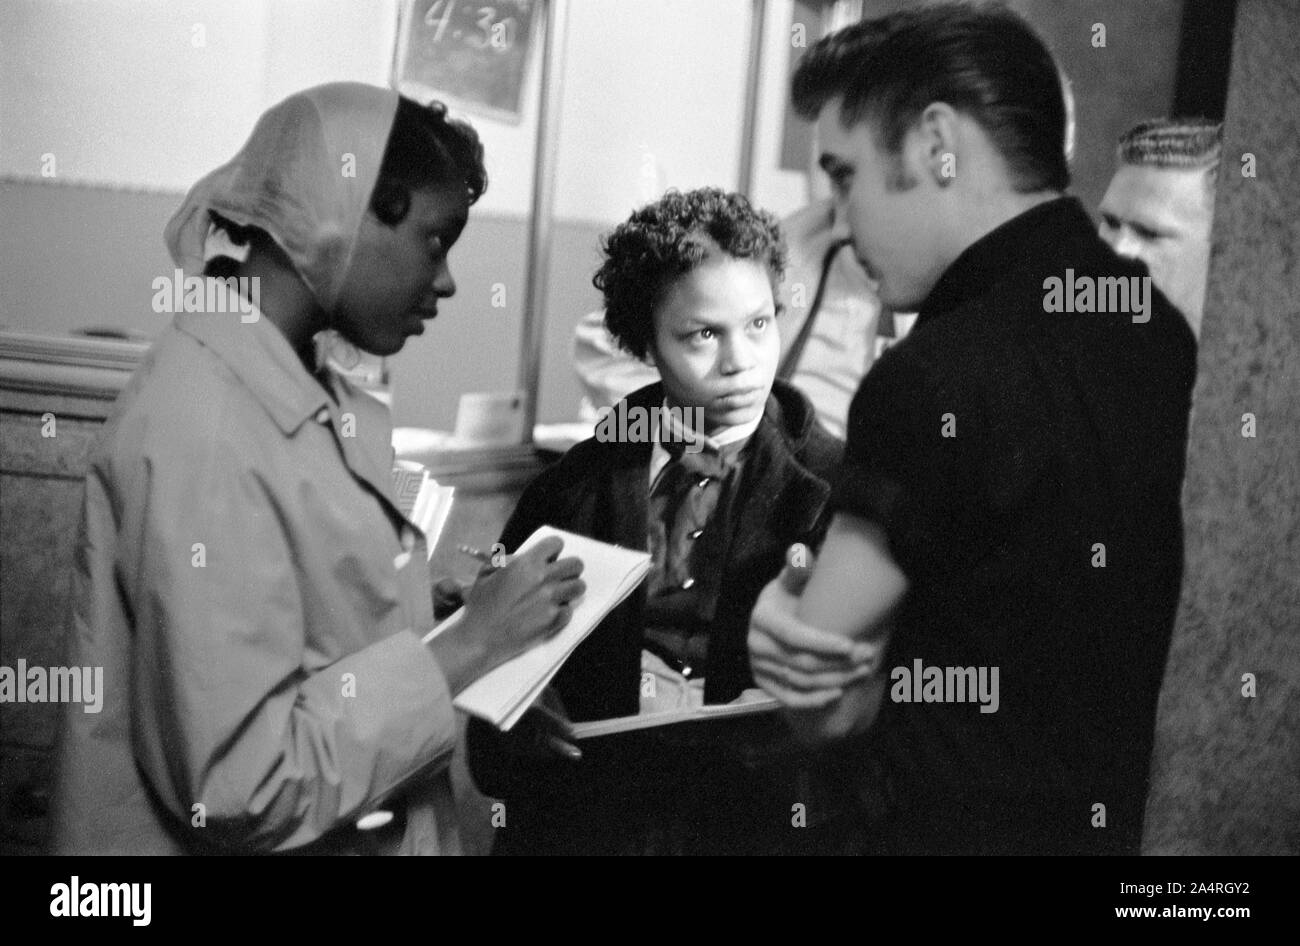 Elvis Presley speaking with young reporters at the Fox Theater in Detroit, May 25, 1956. Stock Photo